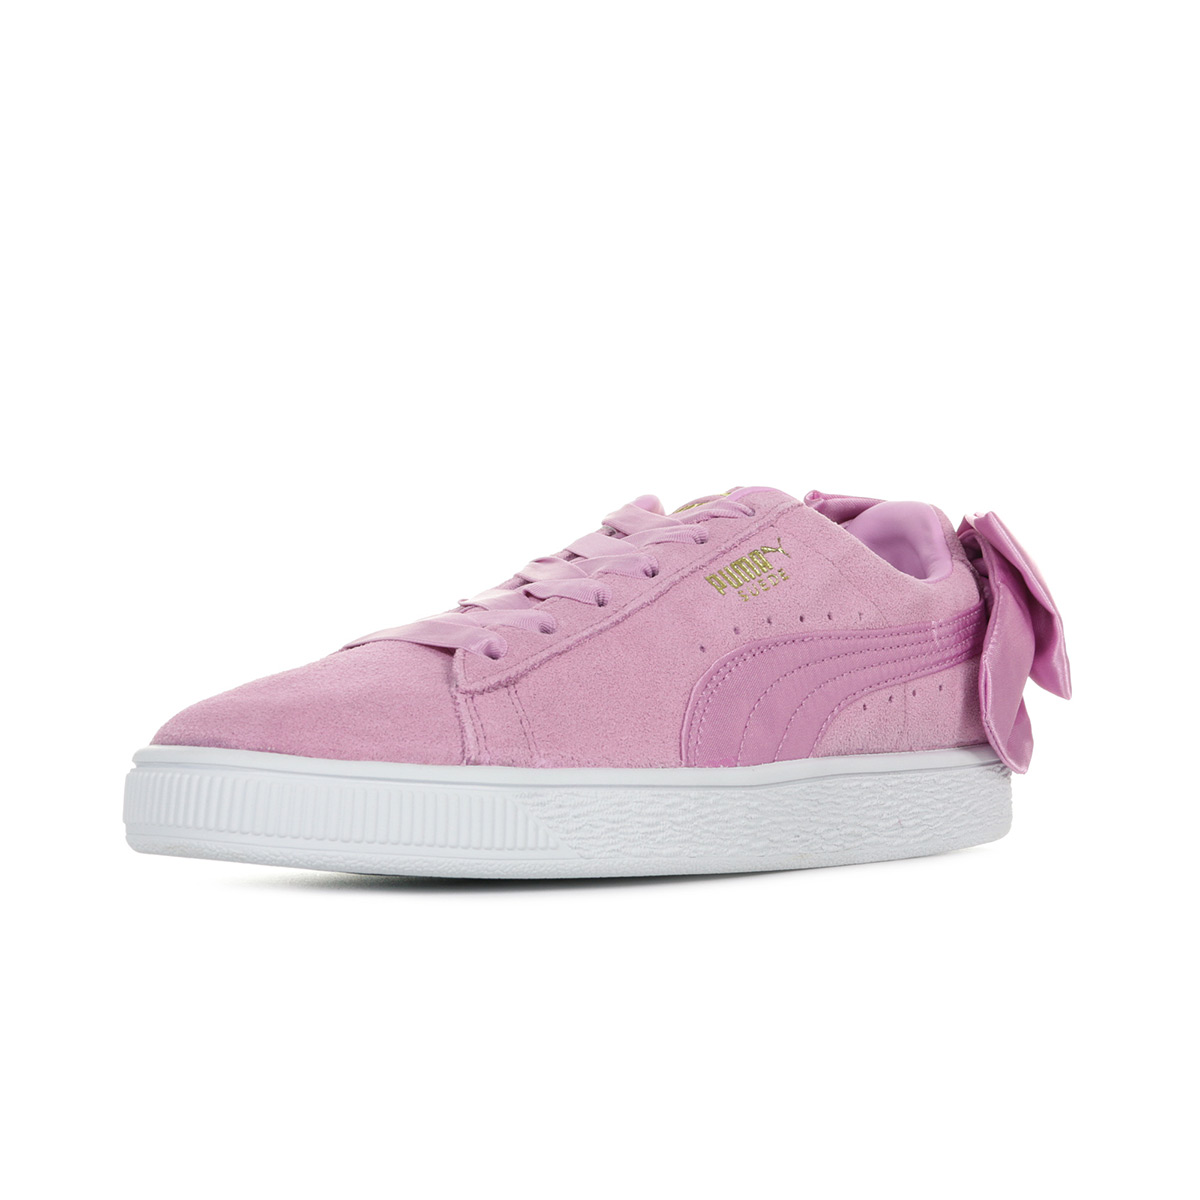 Puma Suede Bow Jr 36731605, Baskets mode fille